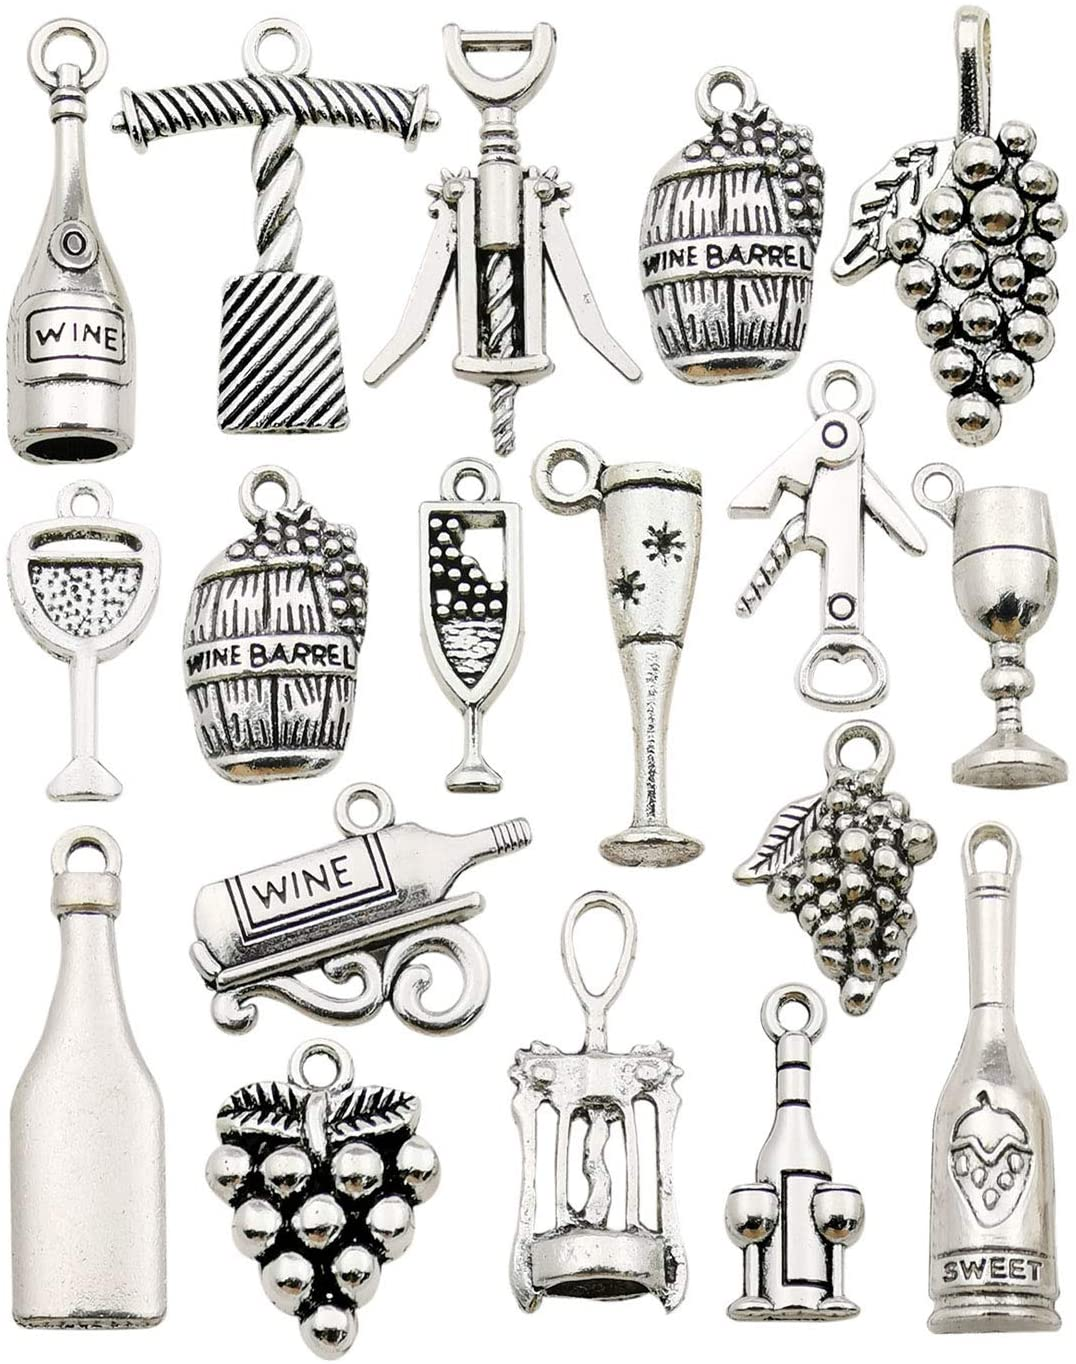 200 PiEcE LoT MiXeD ThEMe STyLeS SiLvER ChArMs PeNdAnTs CRaFT STaRTeR FaST SHiP